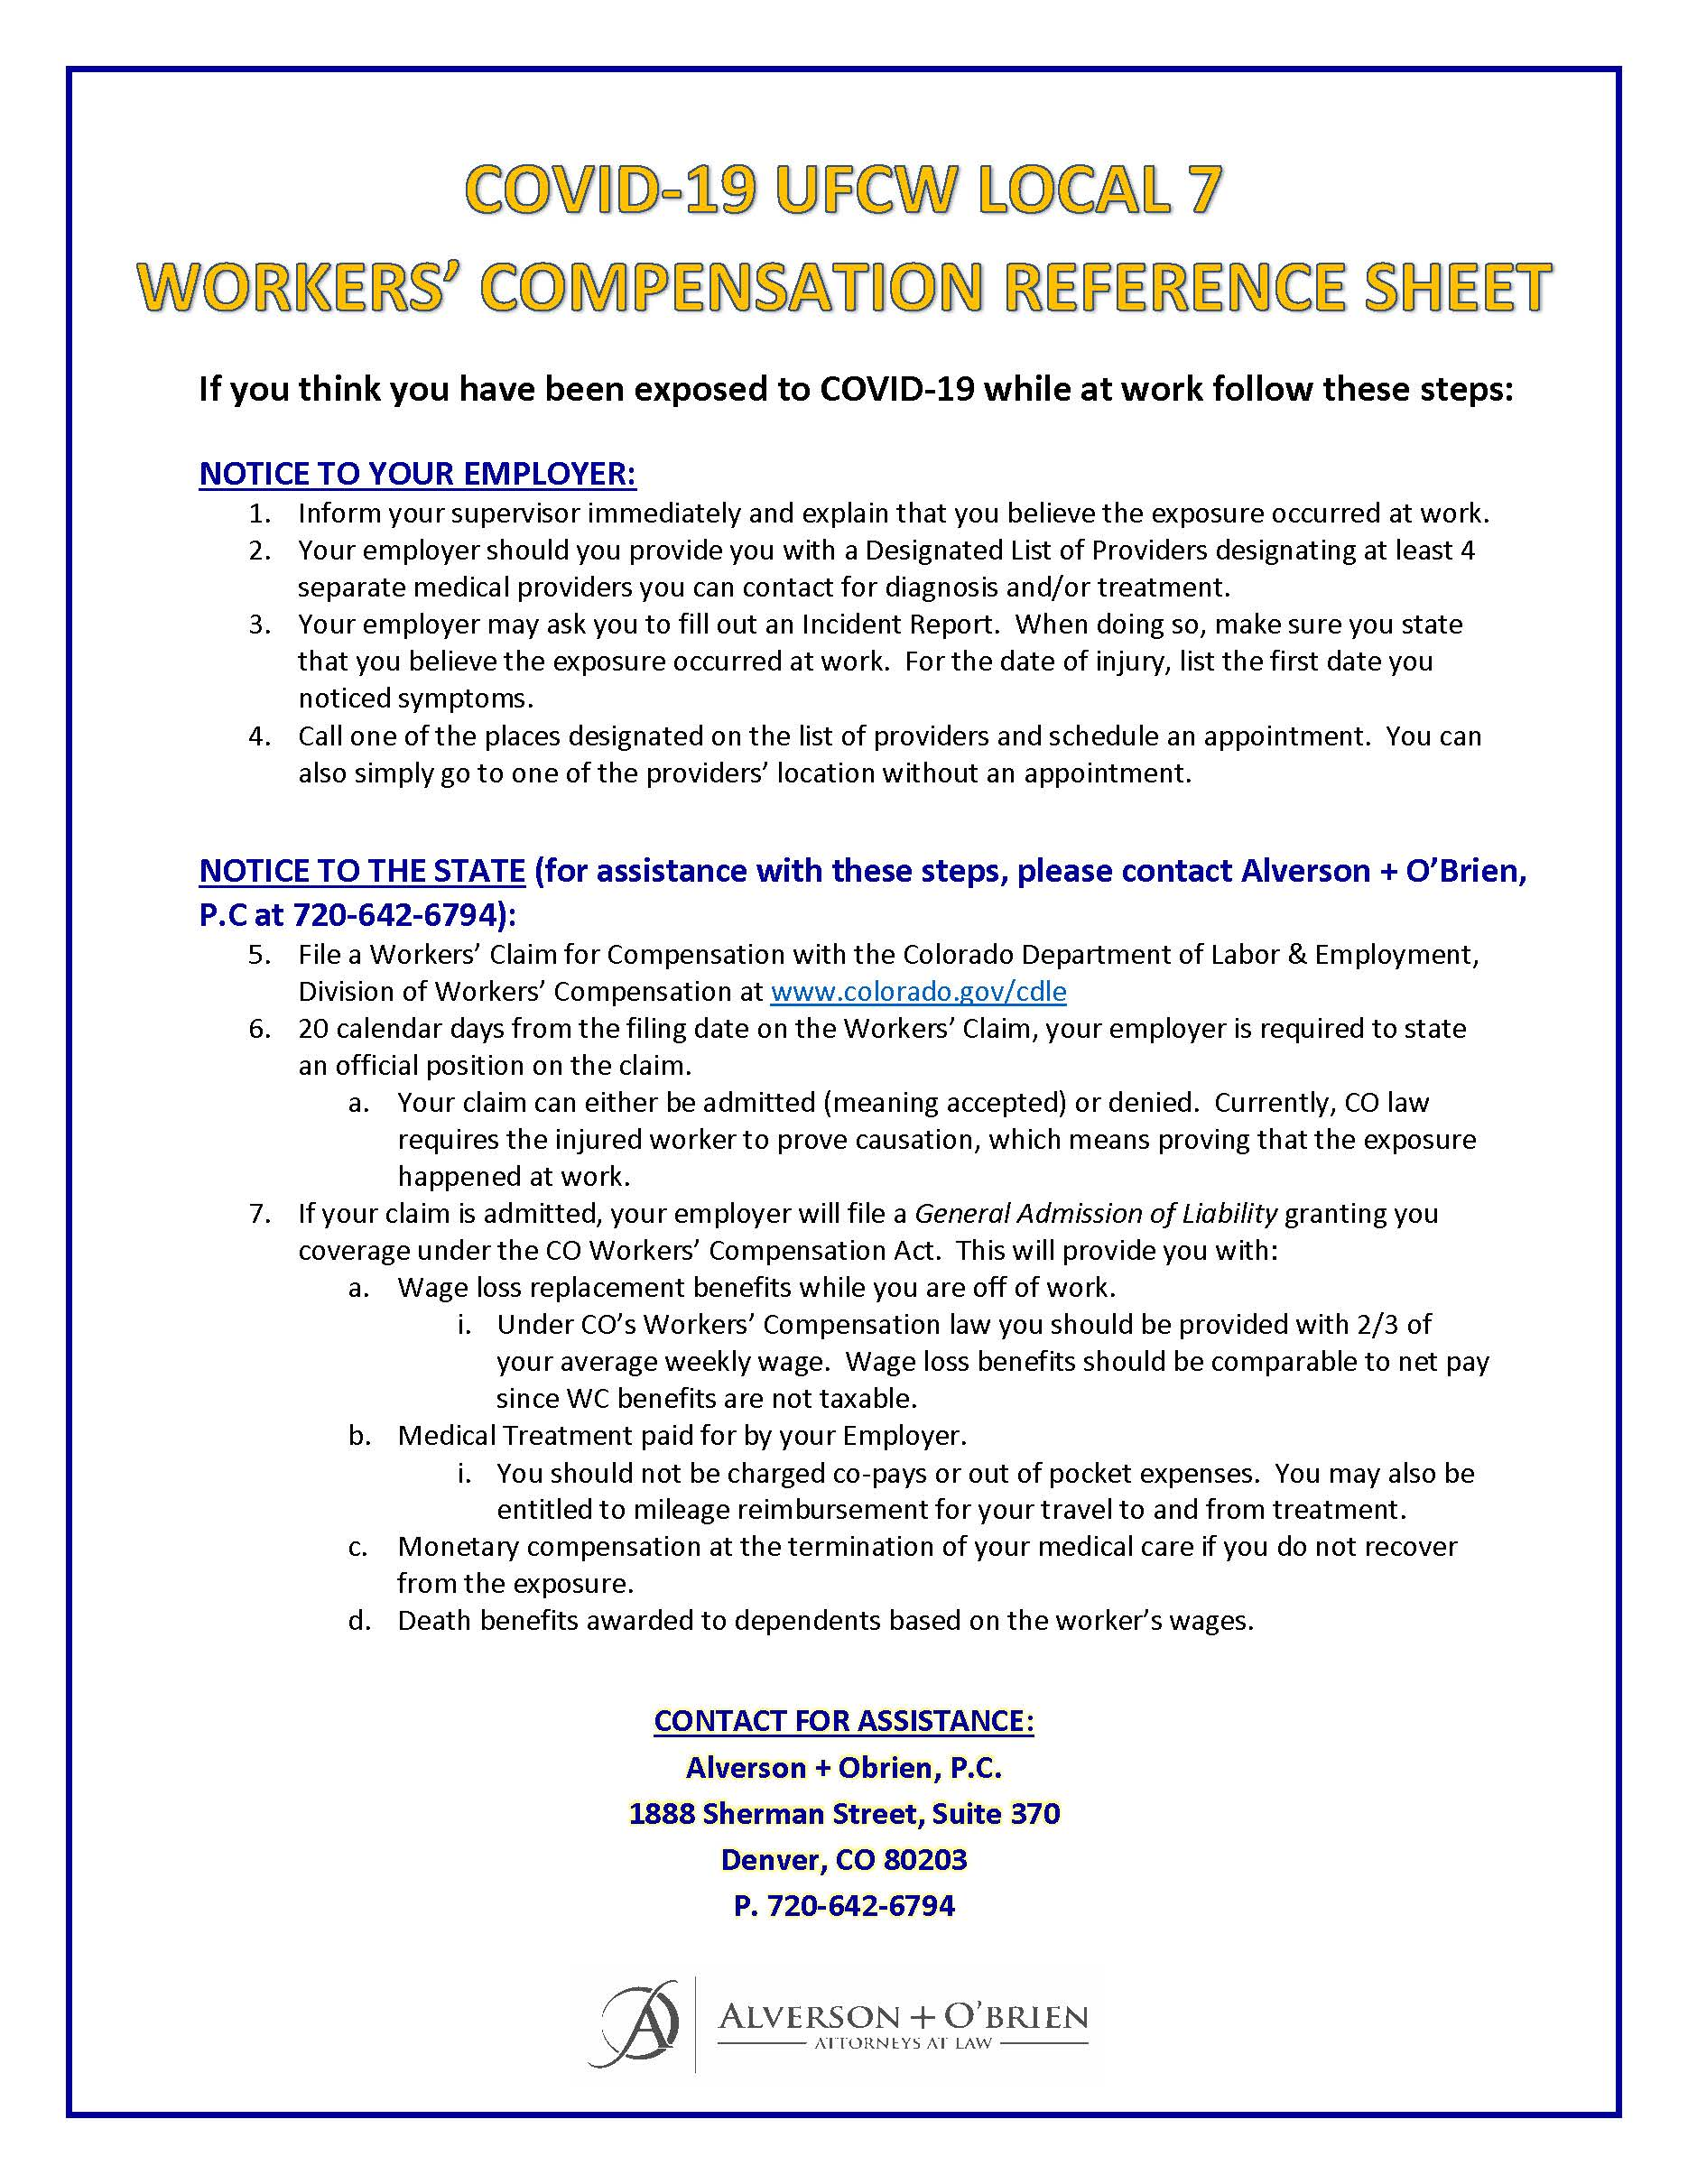 COVID-19 Workers' Comp. Reference Sheet